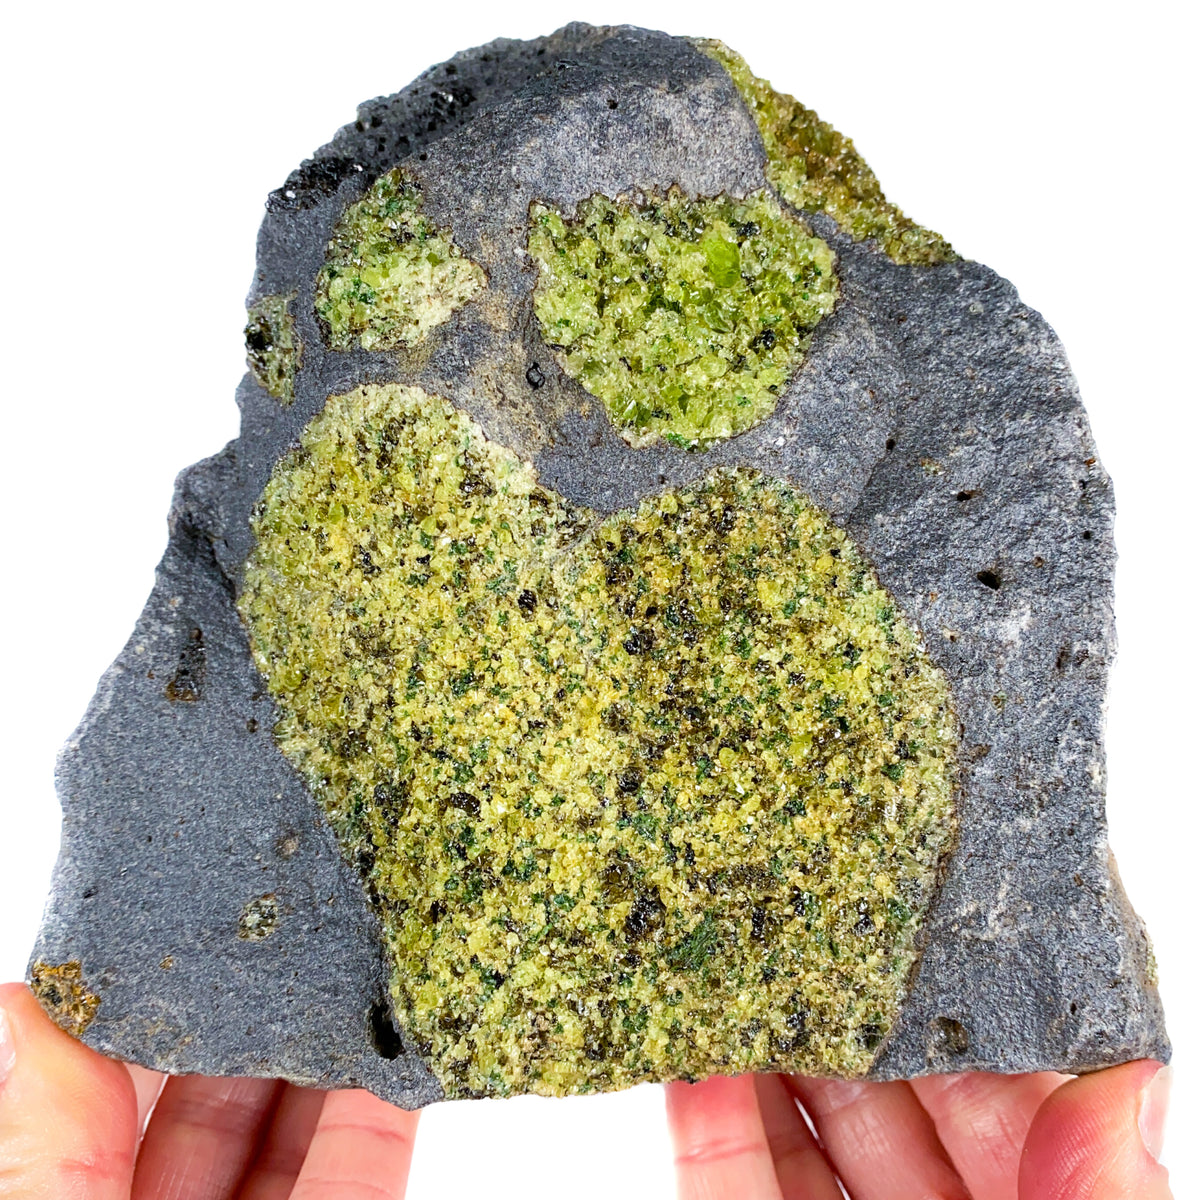 Large Peridot (Olivine) in Basalt Rock Matrix Mineral Specimen from Arizona